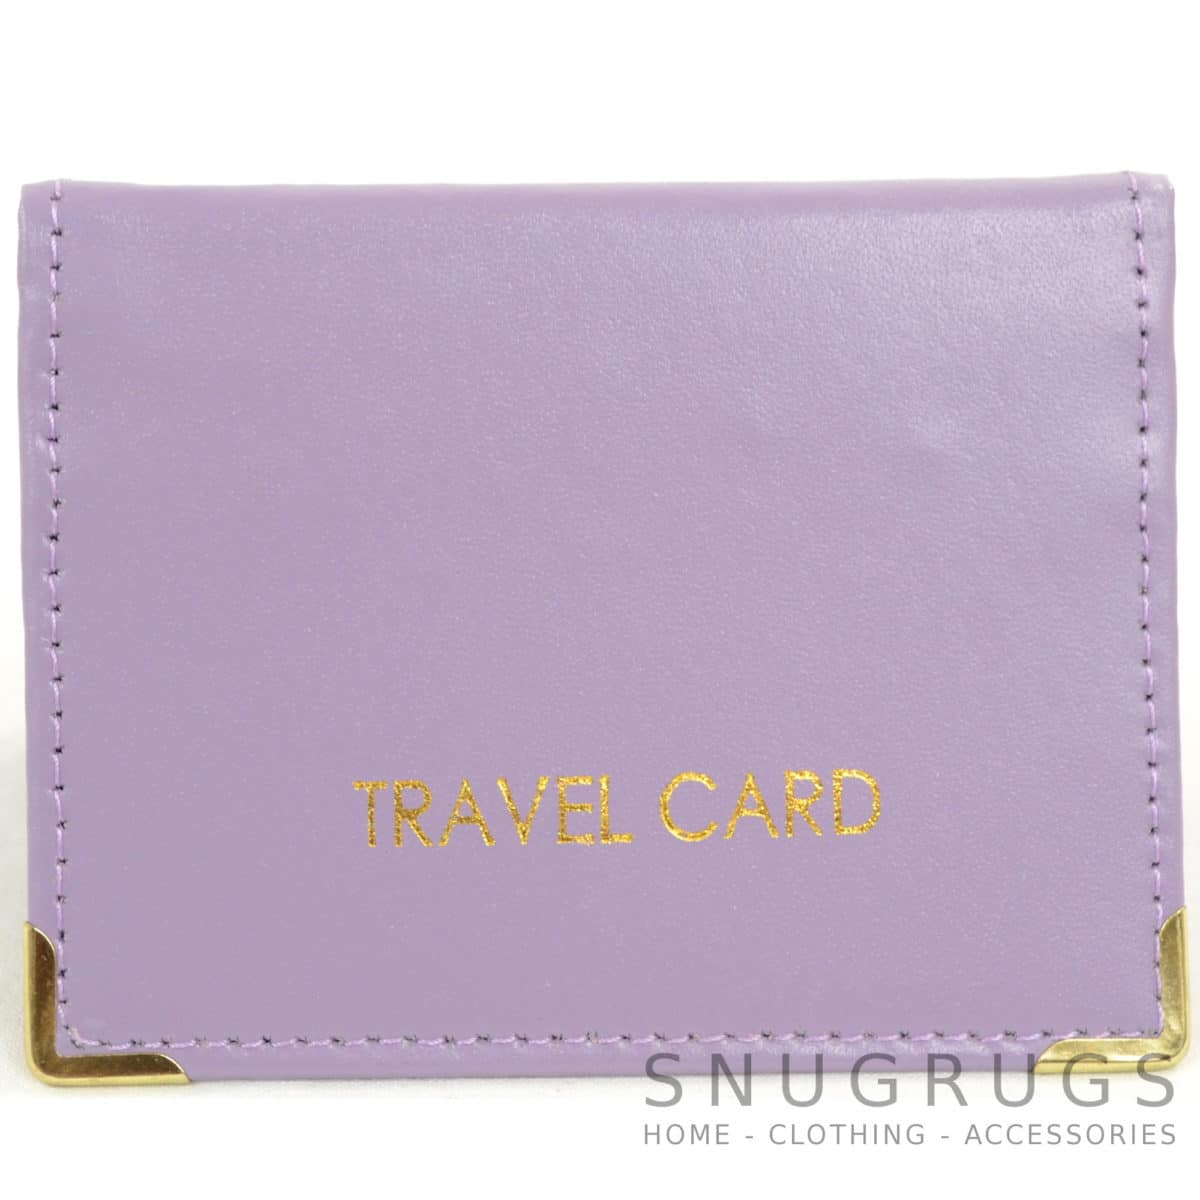 Leather Travel Card / ID / Credit Card Holder - Lilac